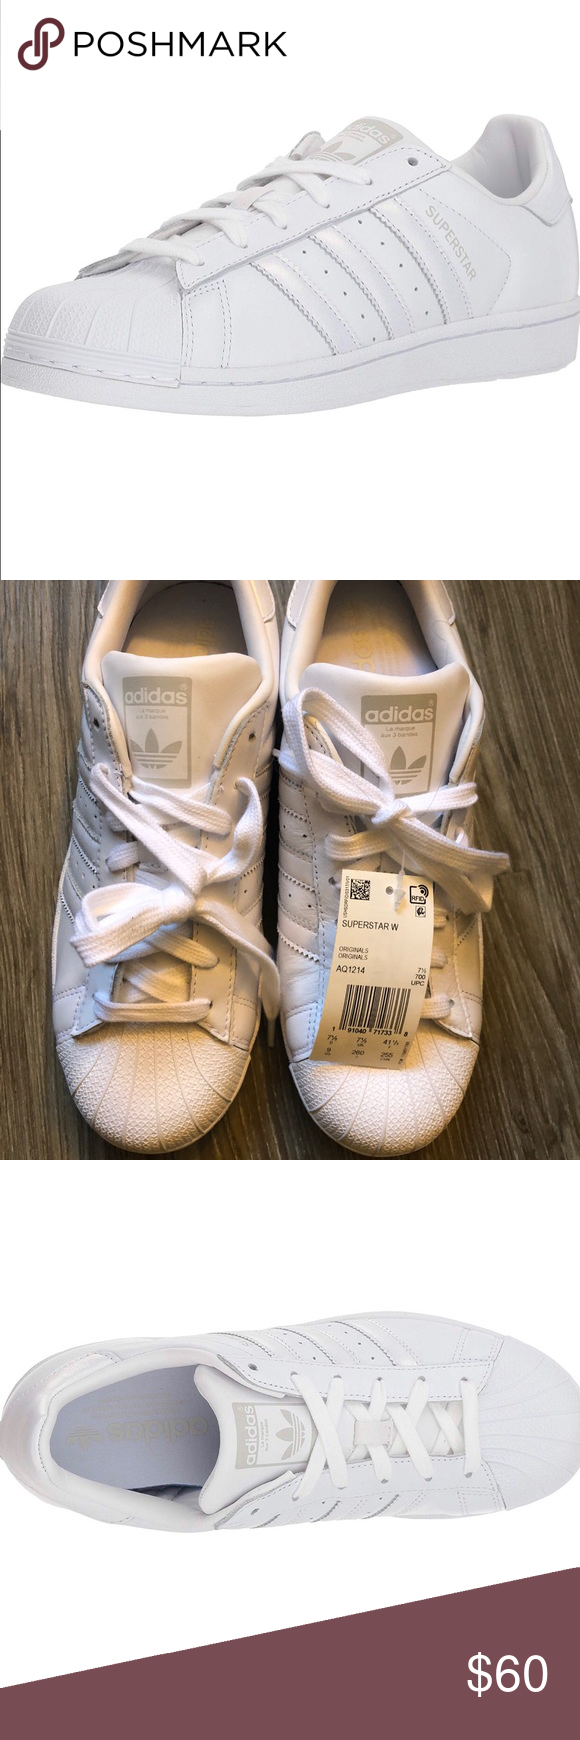 NWT All White Adidas Superstar Size 9 All white adidas superstars ... 1c3b0851c